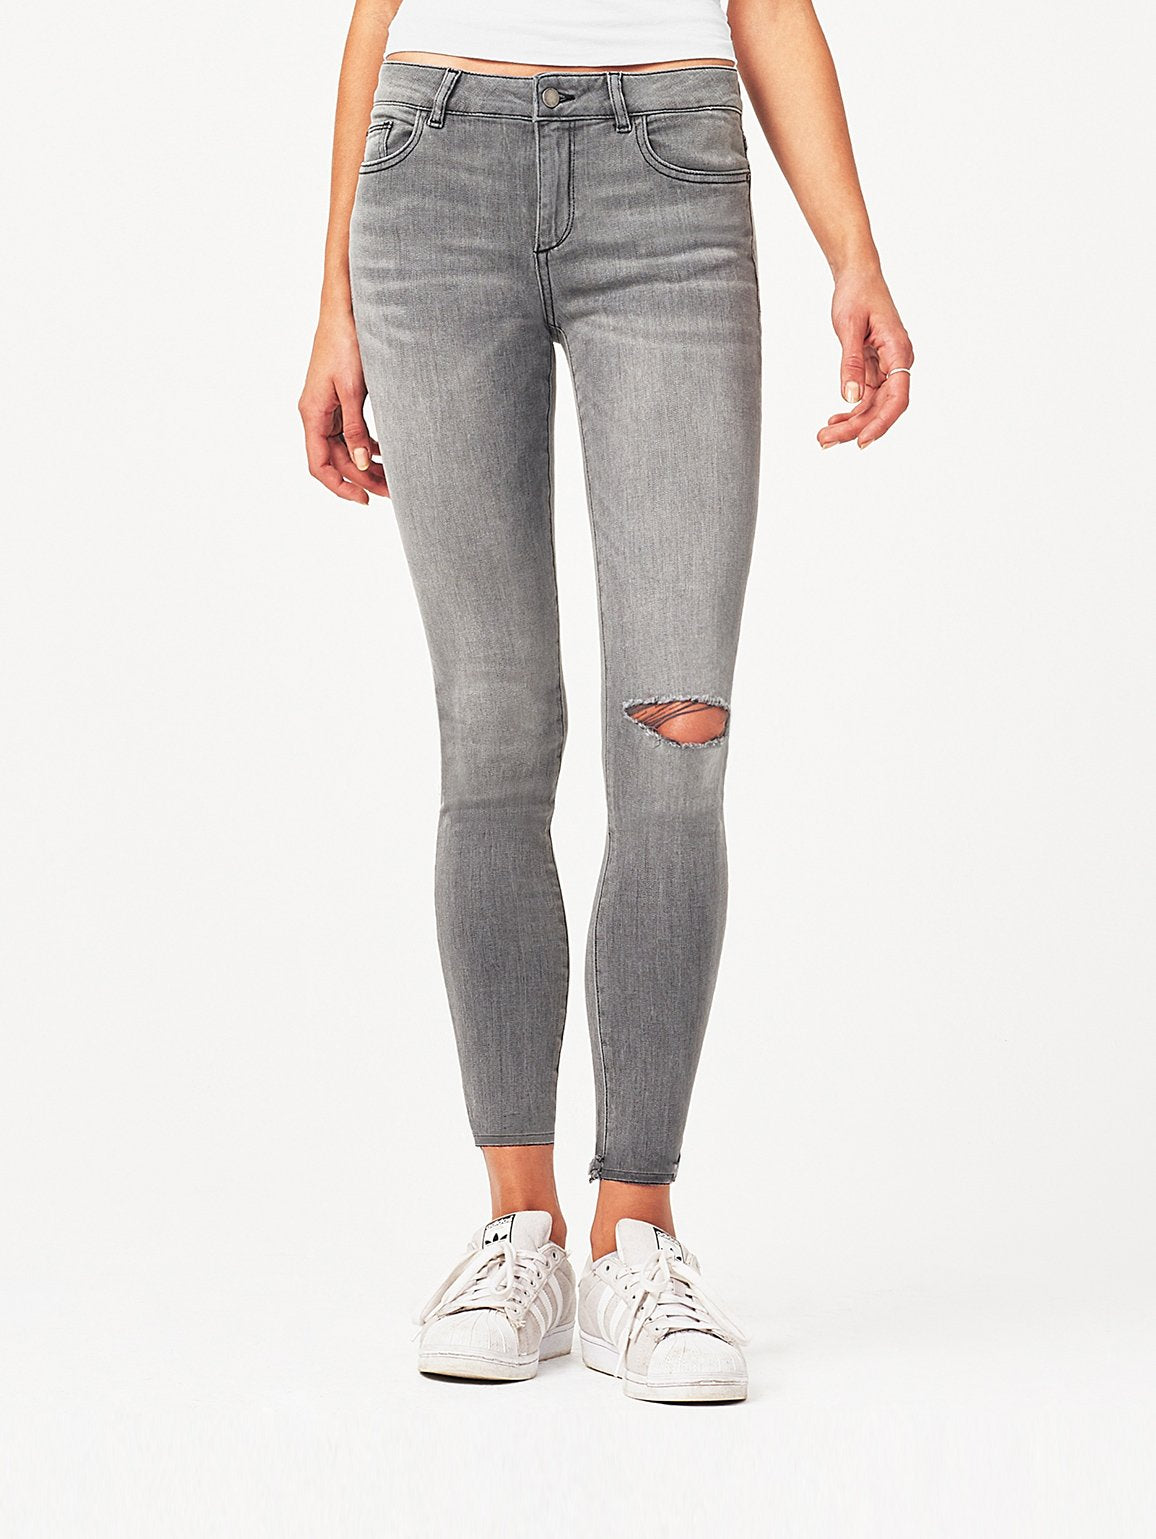 Image of Emma Low Rise Skinny / Tarrant